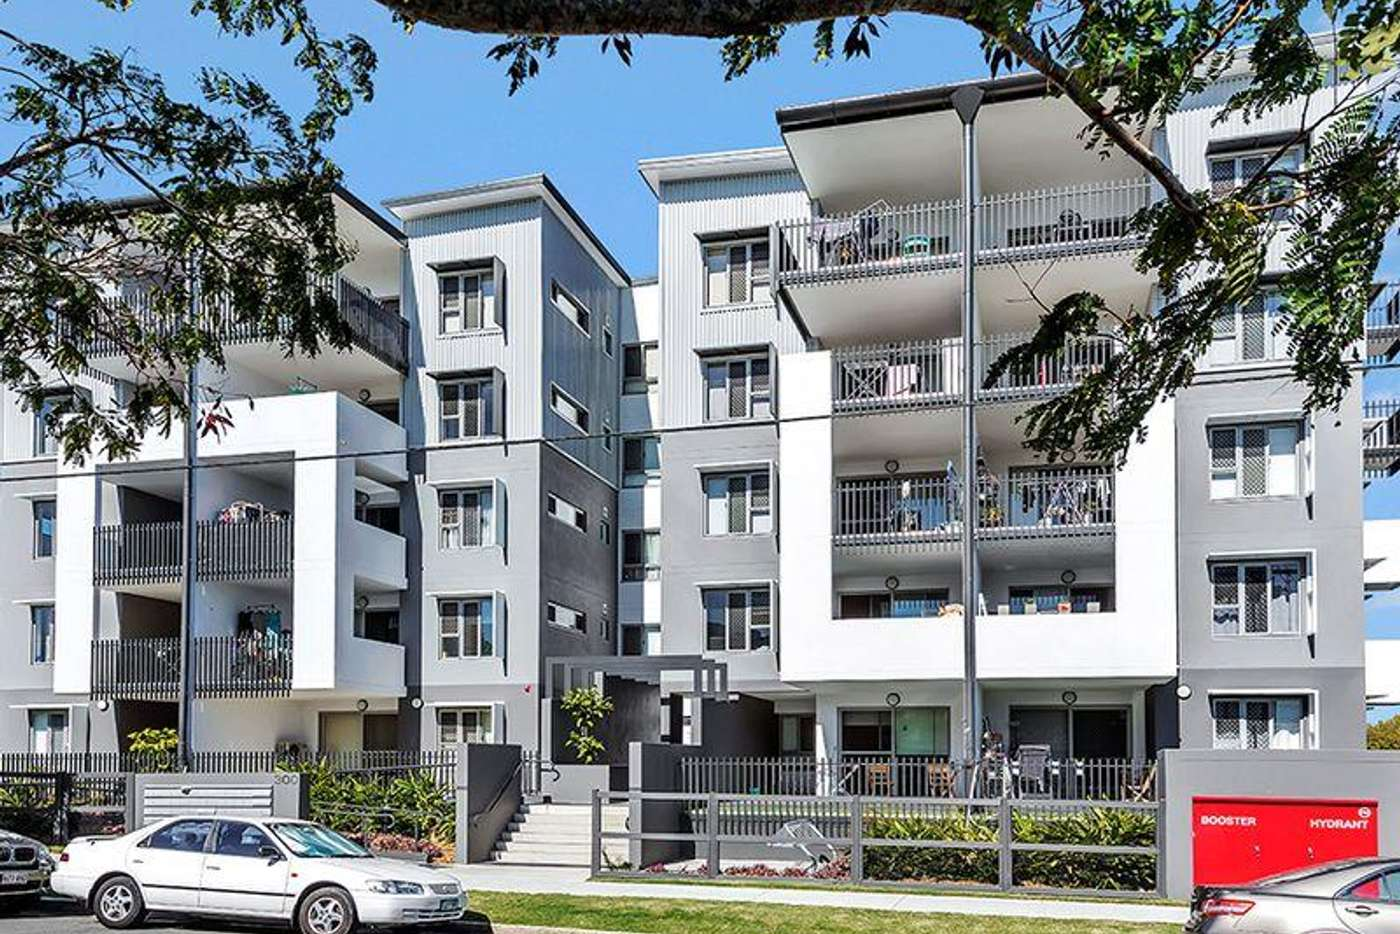 Main view of Homely apartment listing, 300 Turton Street, Coopers Plains QLD 4108